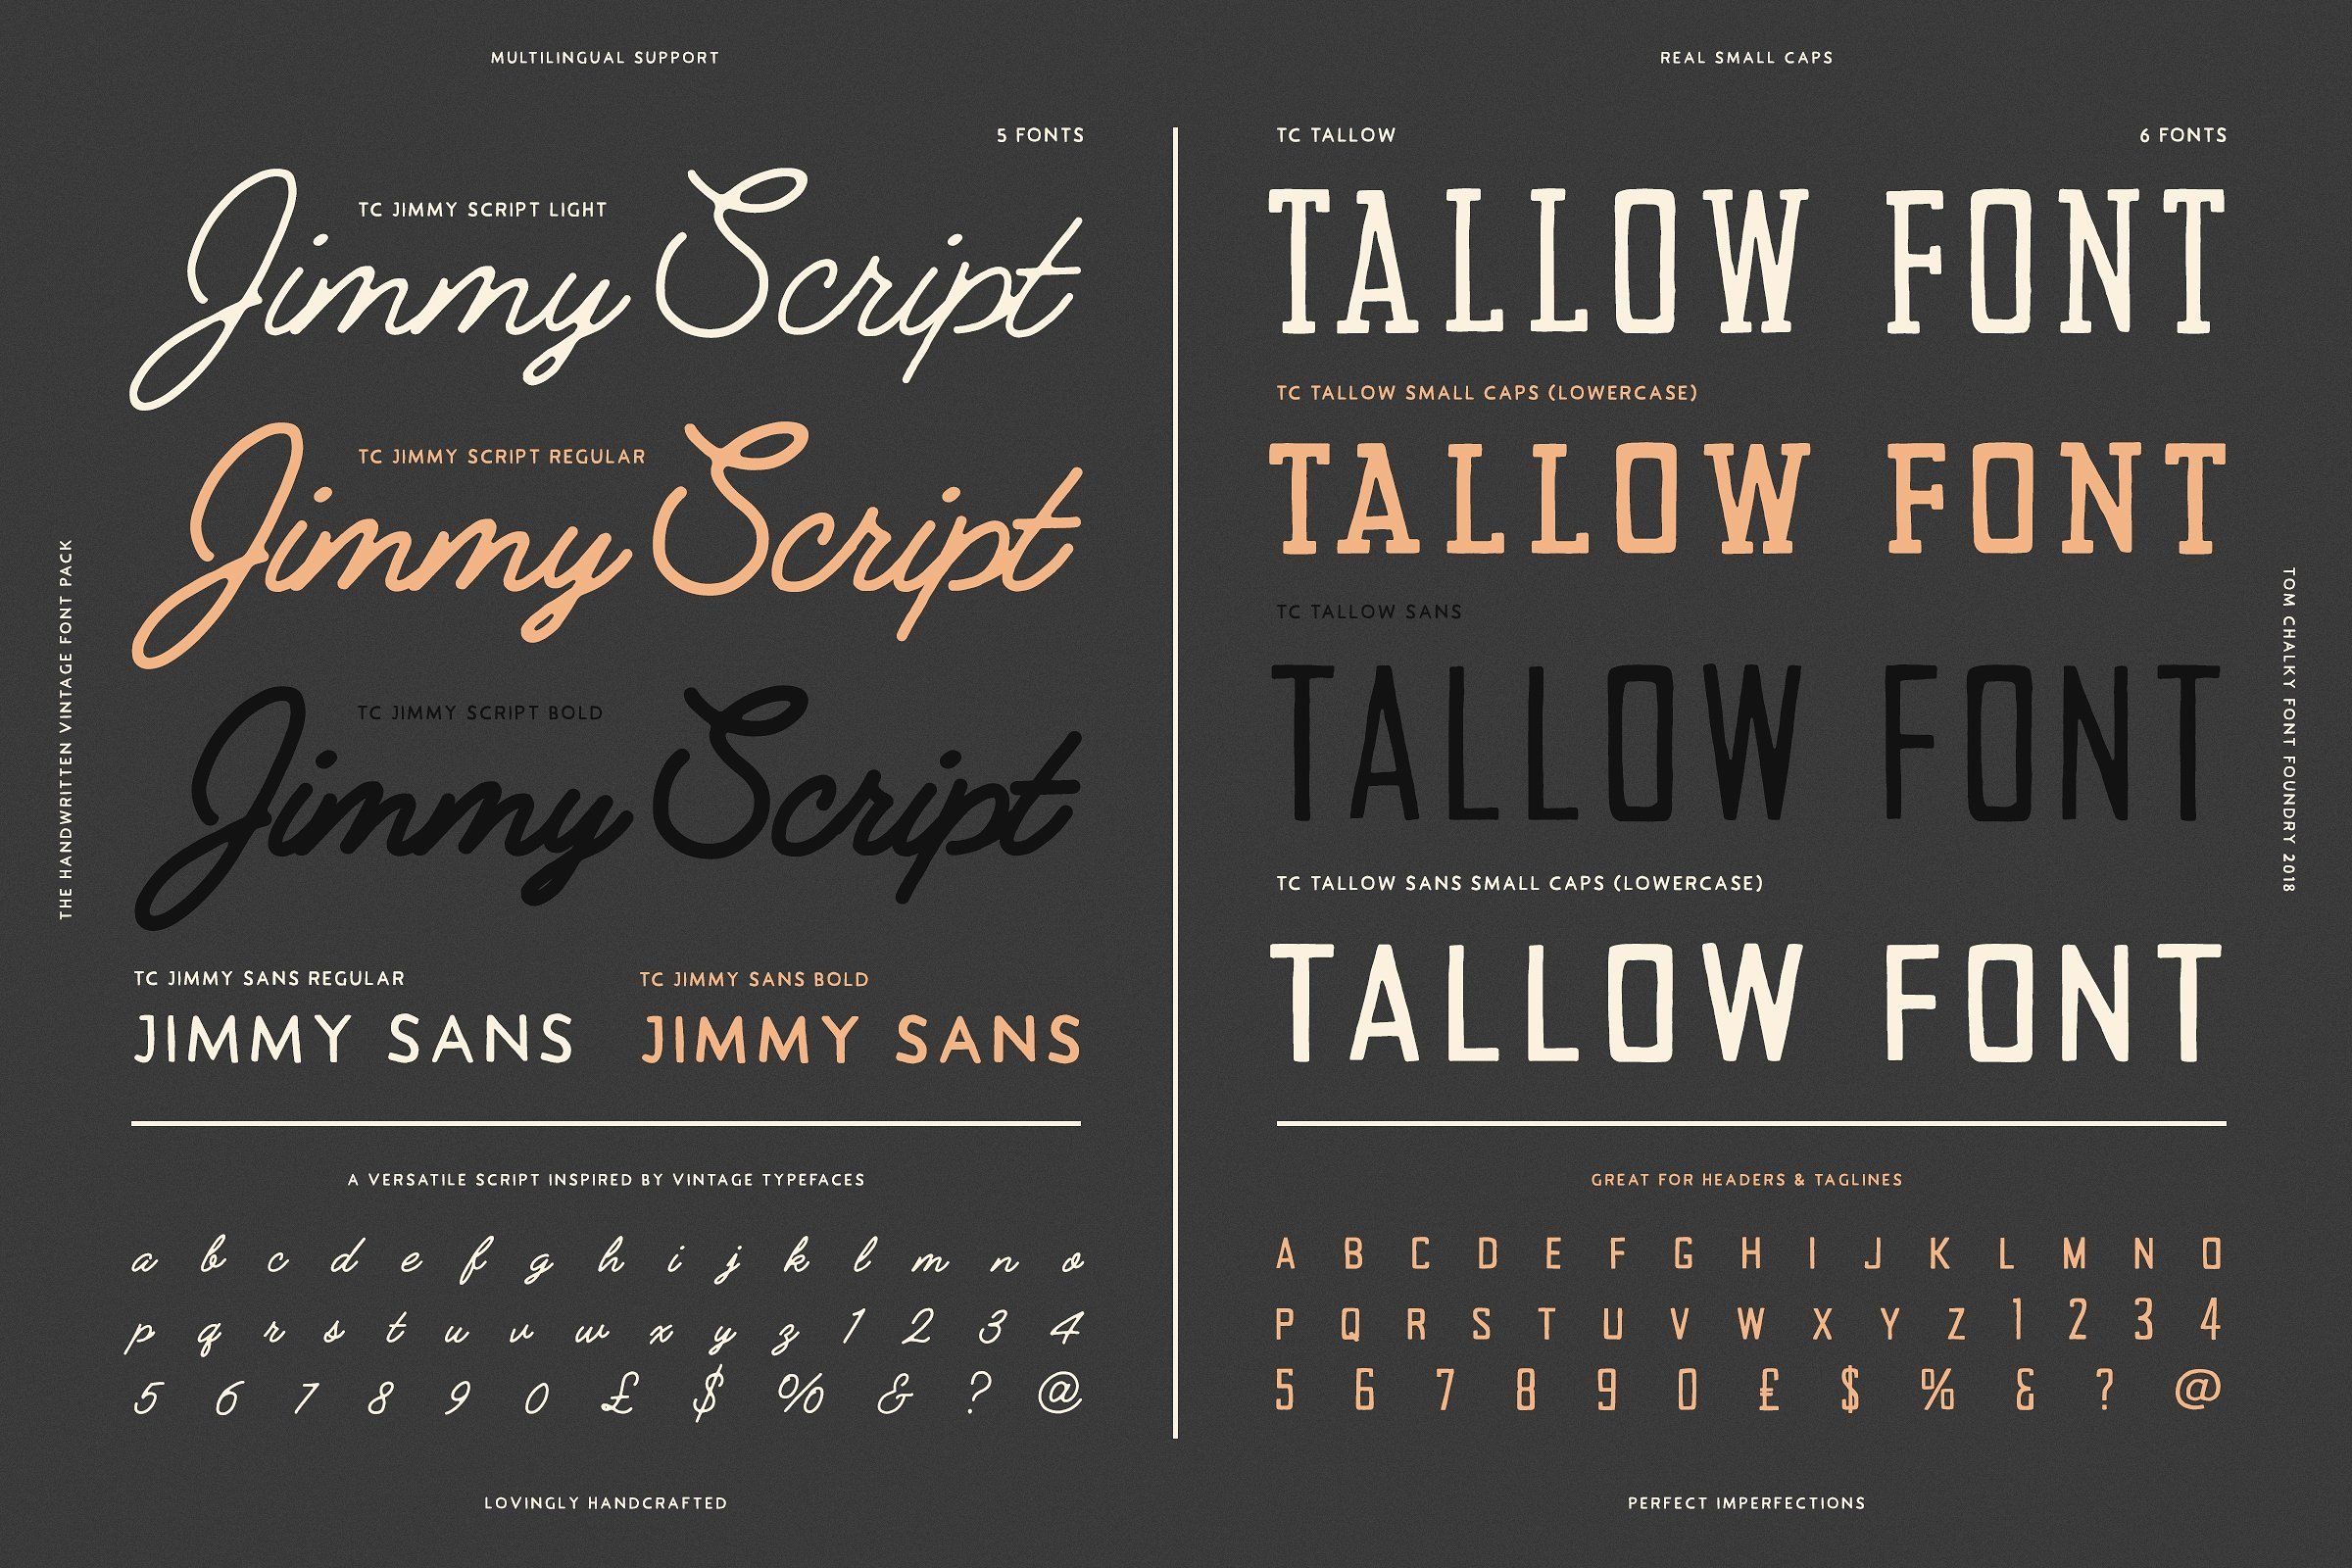 Download 19 Vintage Fonts Bundle & Extras | Vintage fonts, Font ...